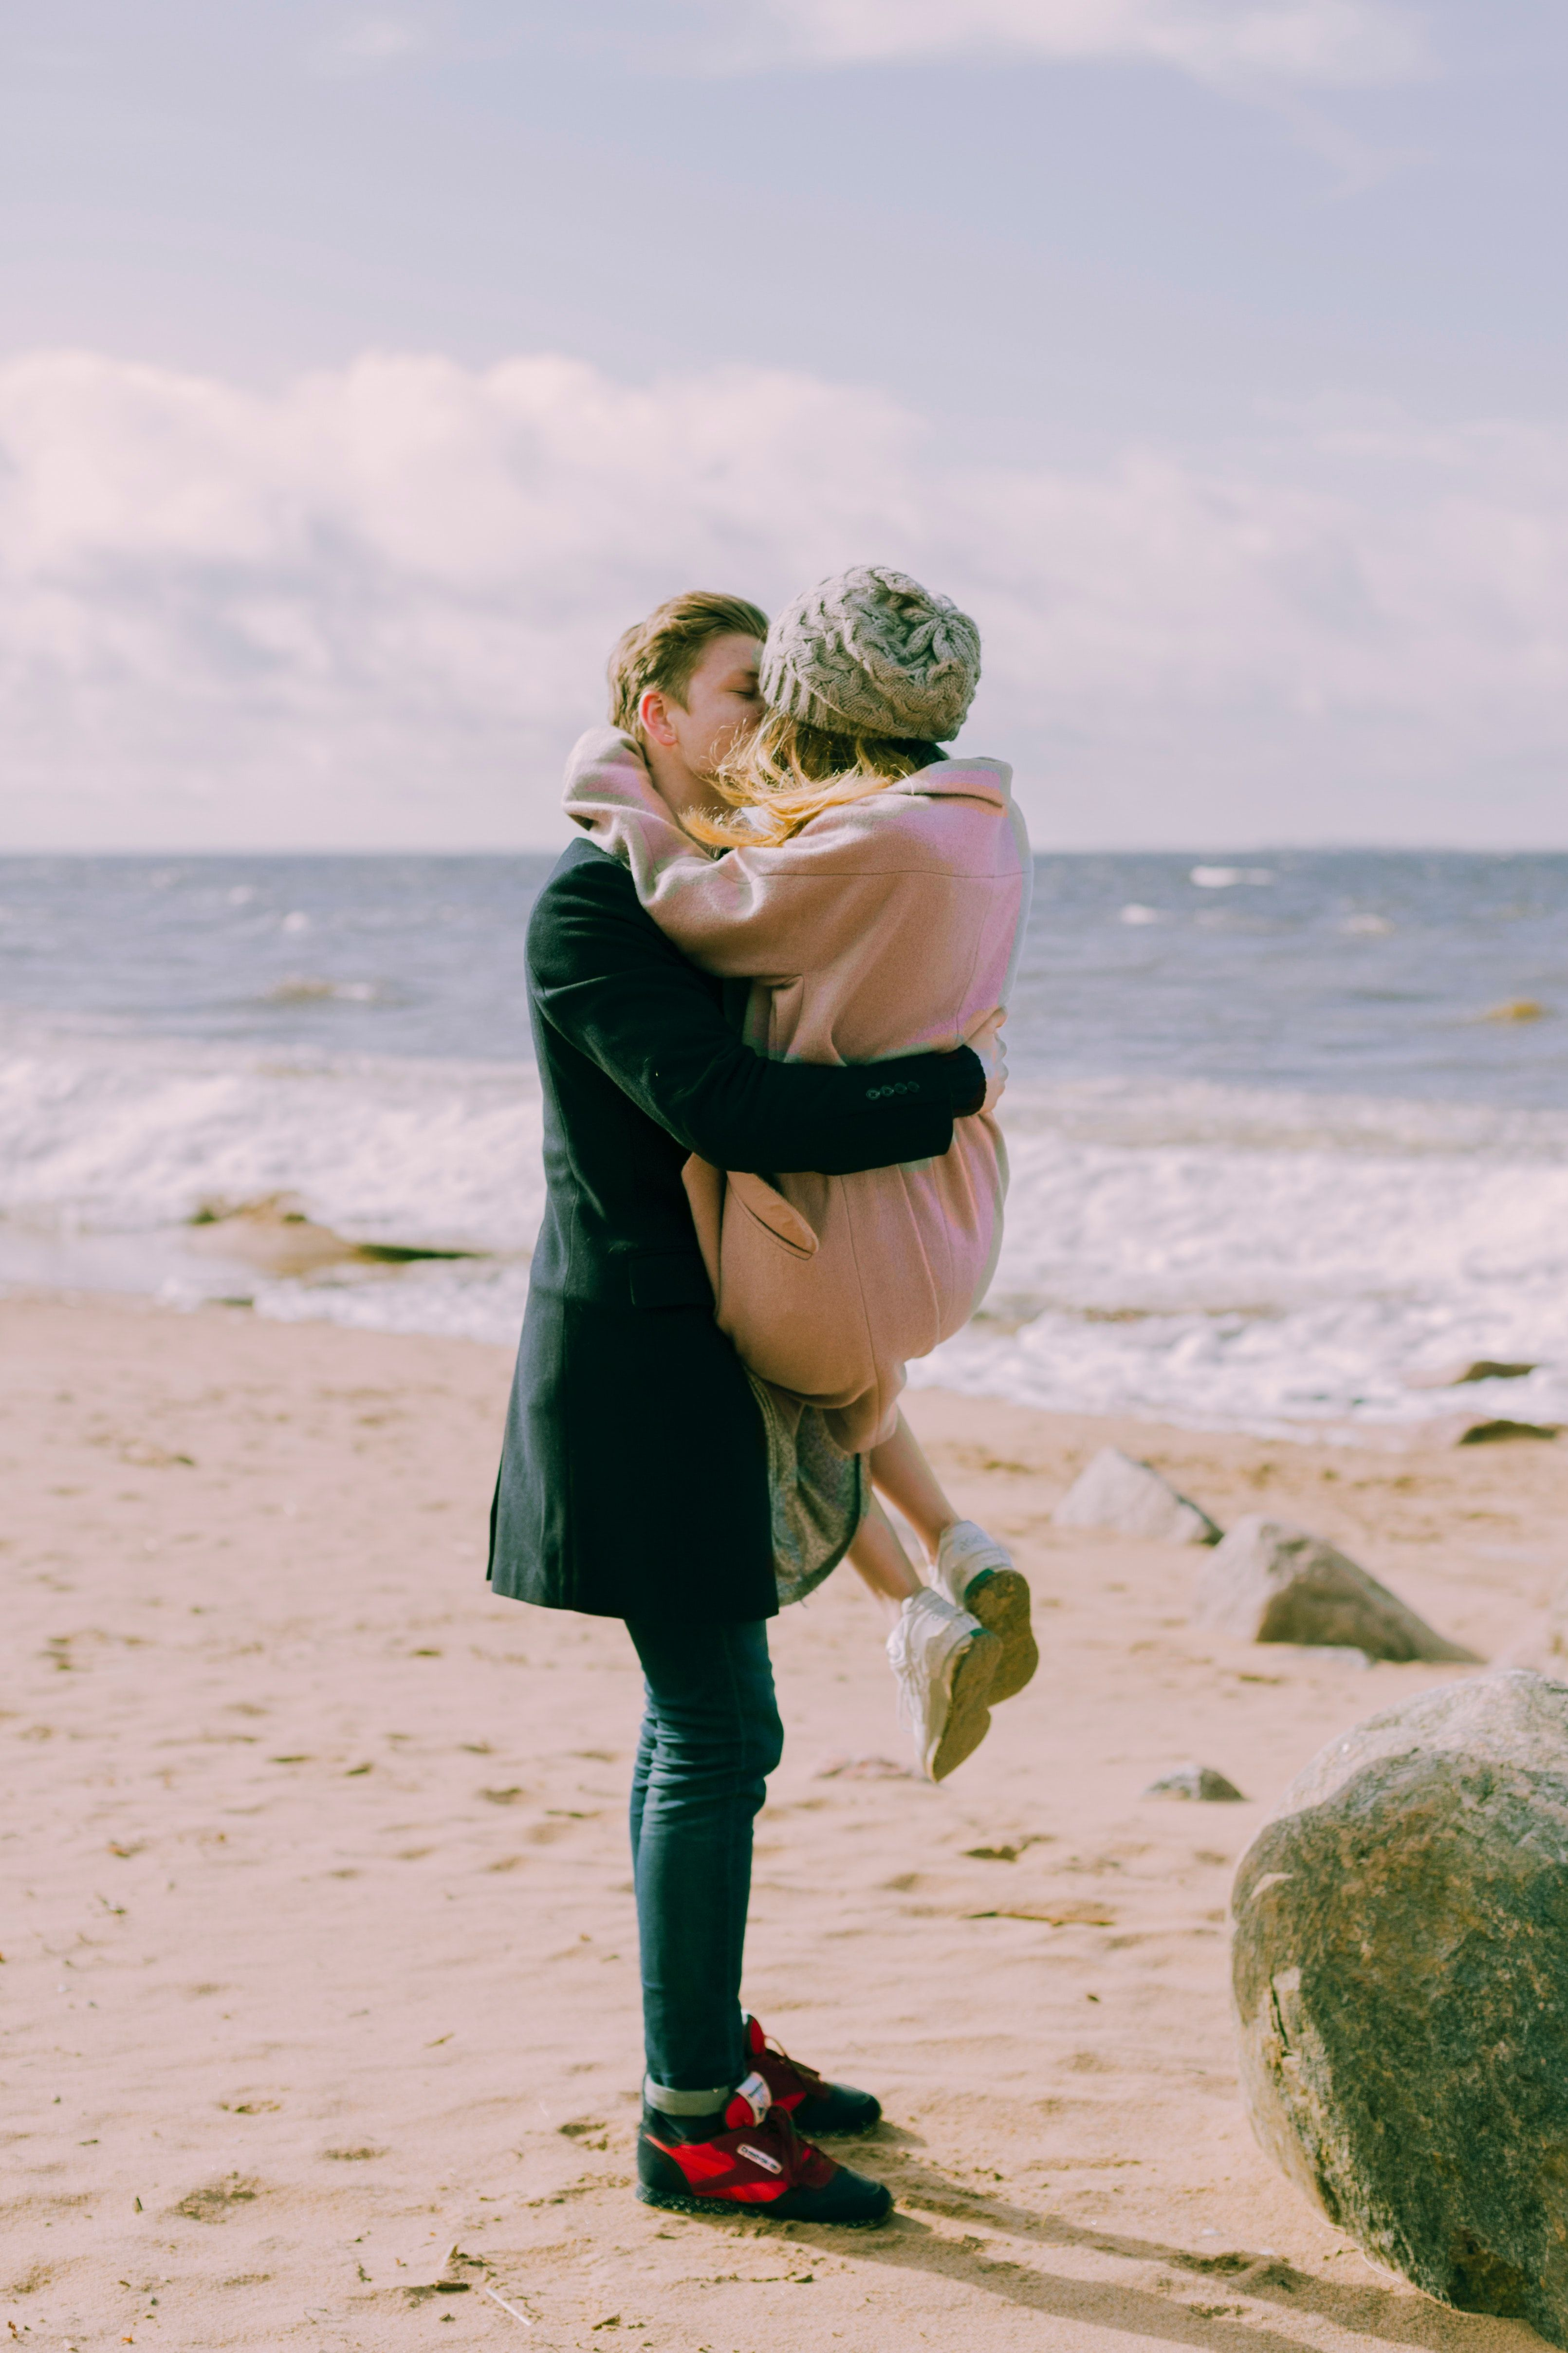 Why Your Relationship Needs Long-Term Relationship Goals